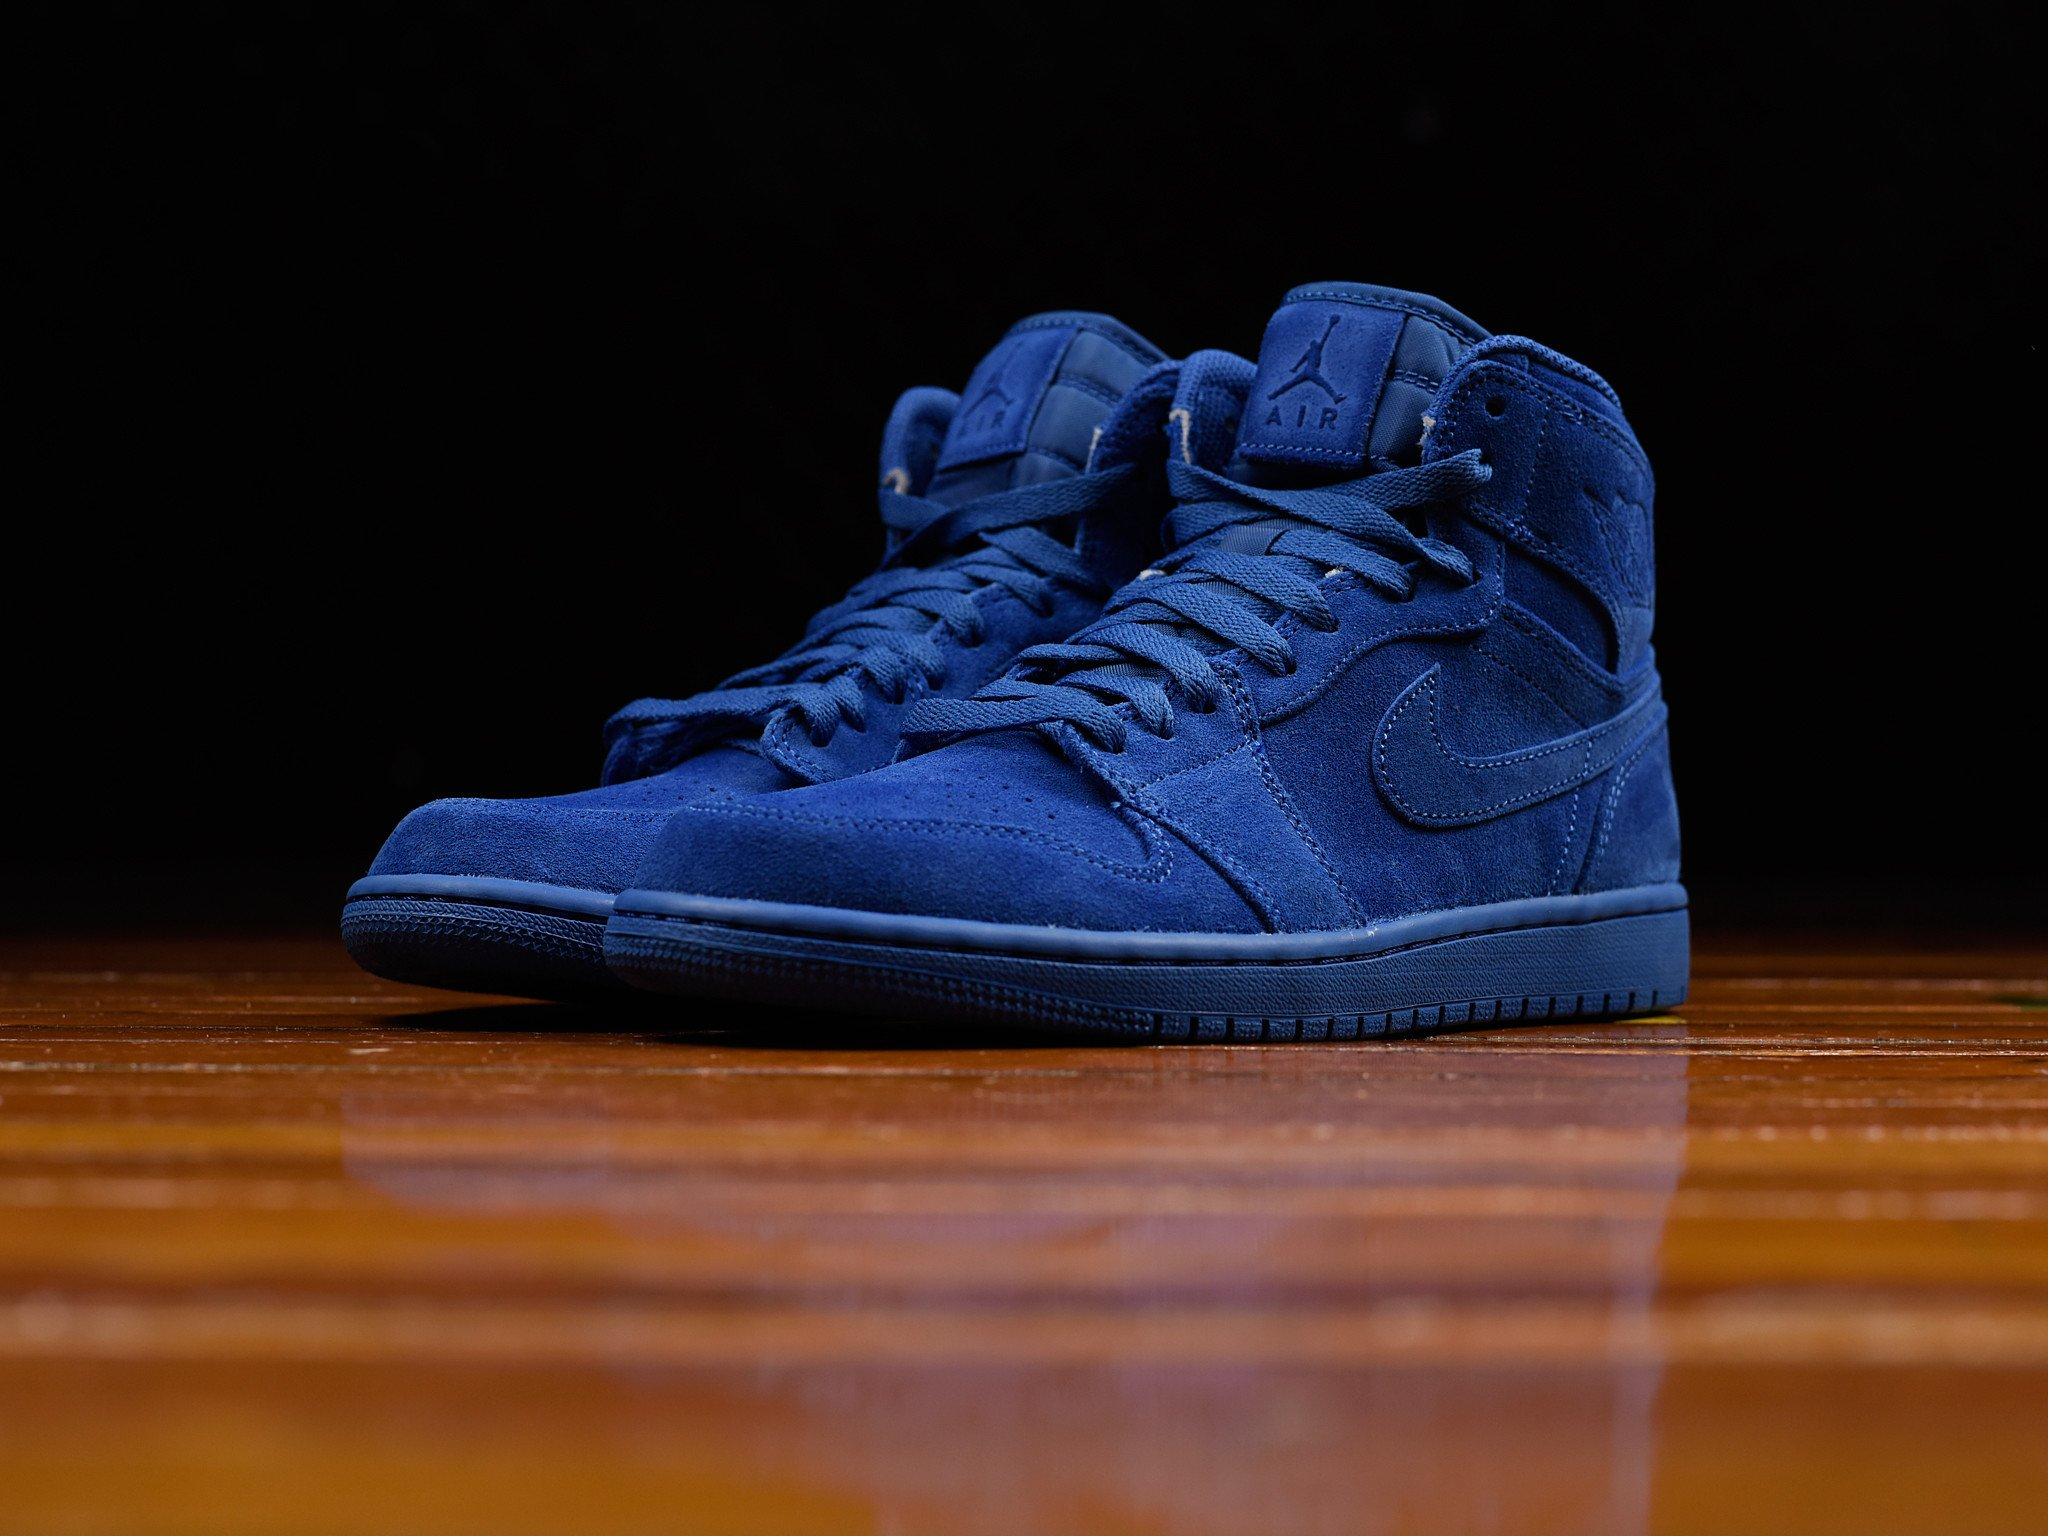 Who Picked Up A Pair Of The Air Jordan